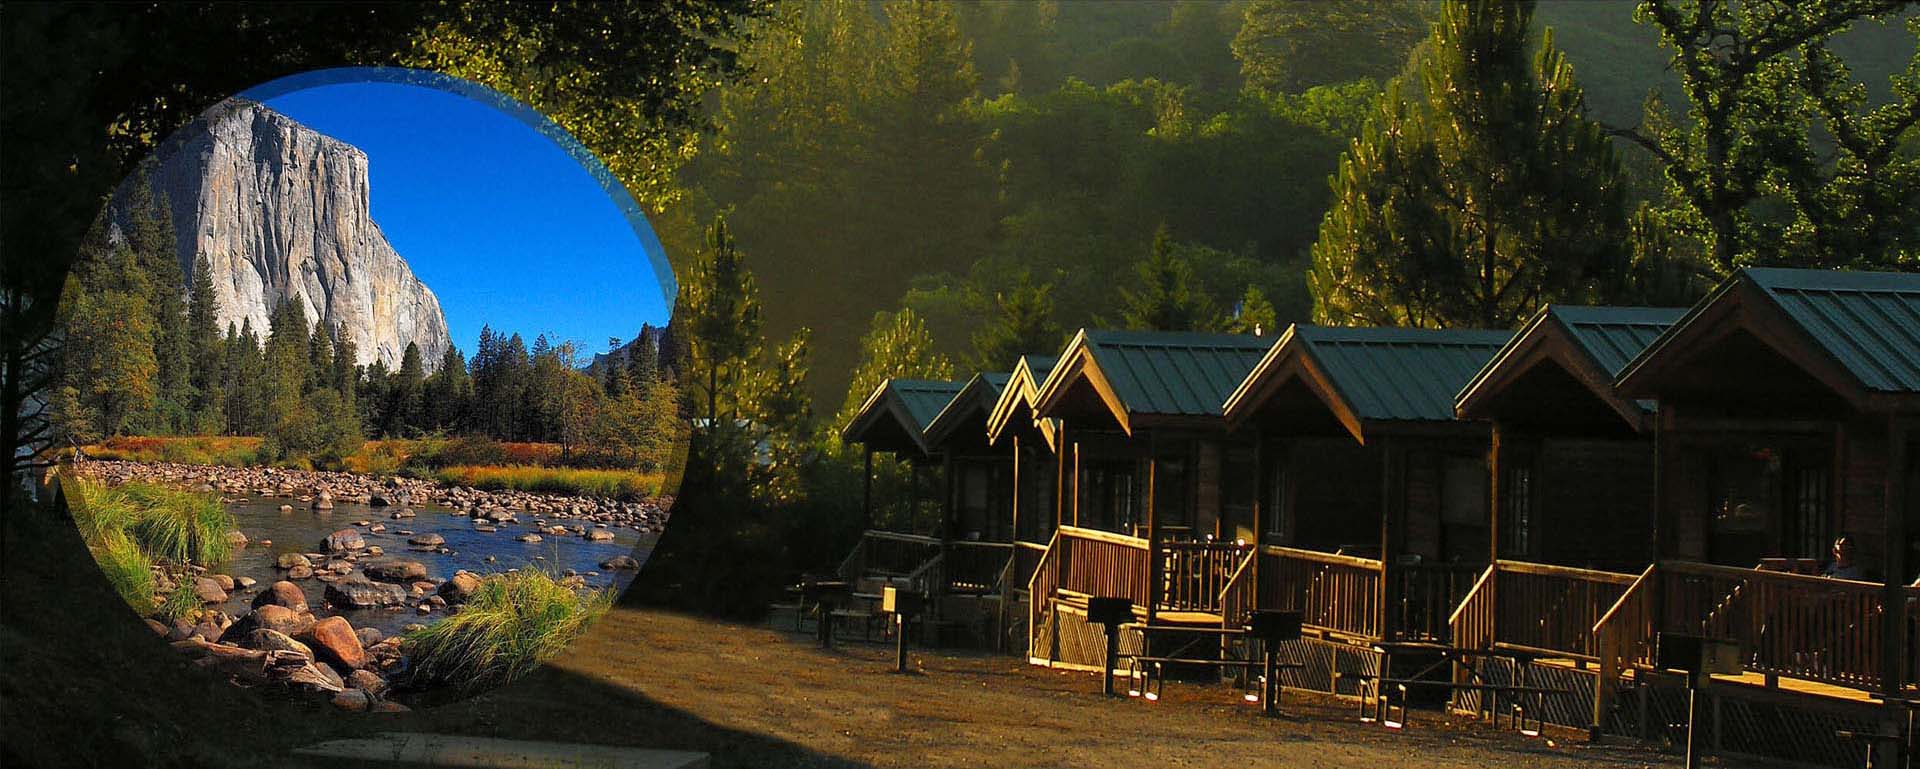 Yosemite National Park Campground Cabins Rv Sites